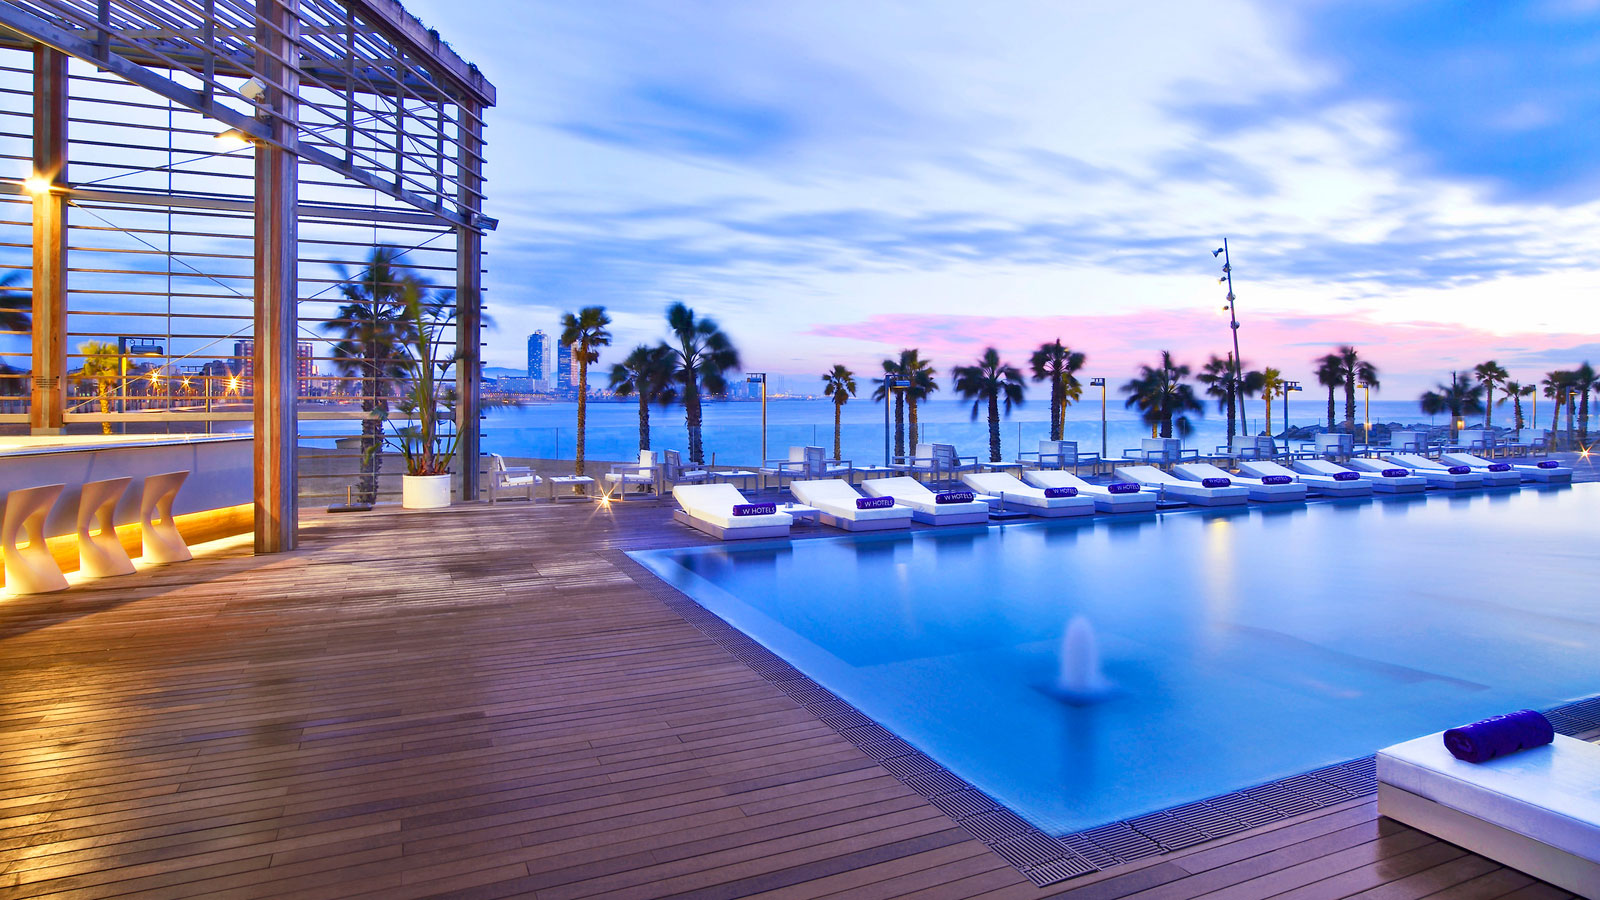 The w hotel in barcelona by ricardo bofill homedezen for Hotel in barcellona